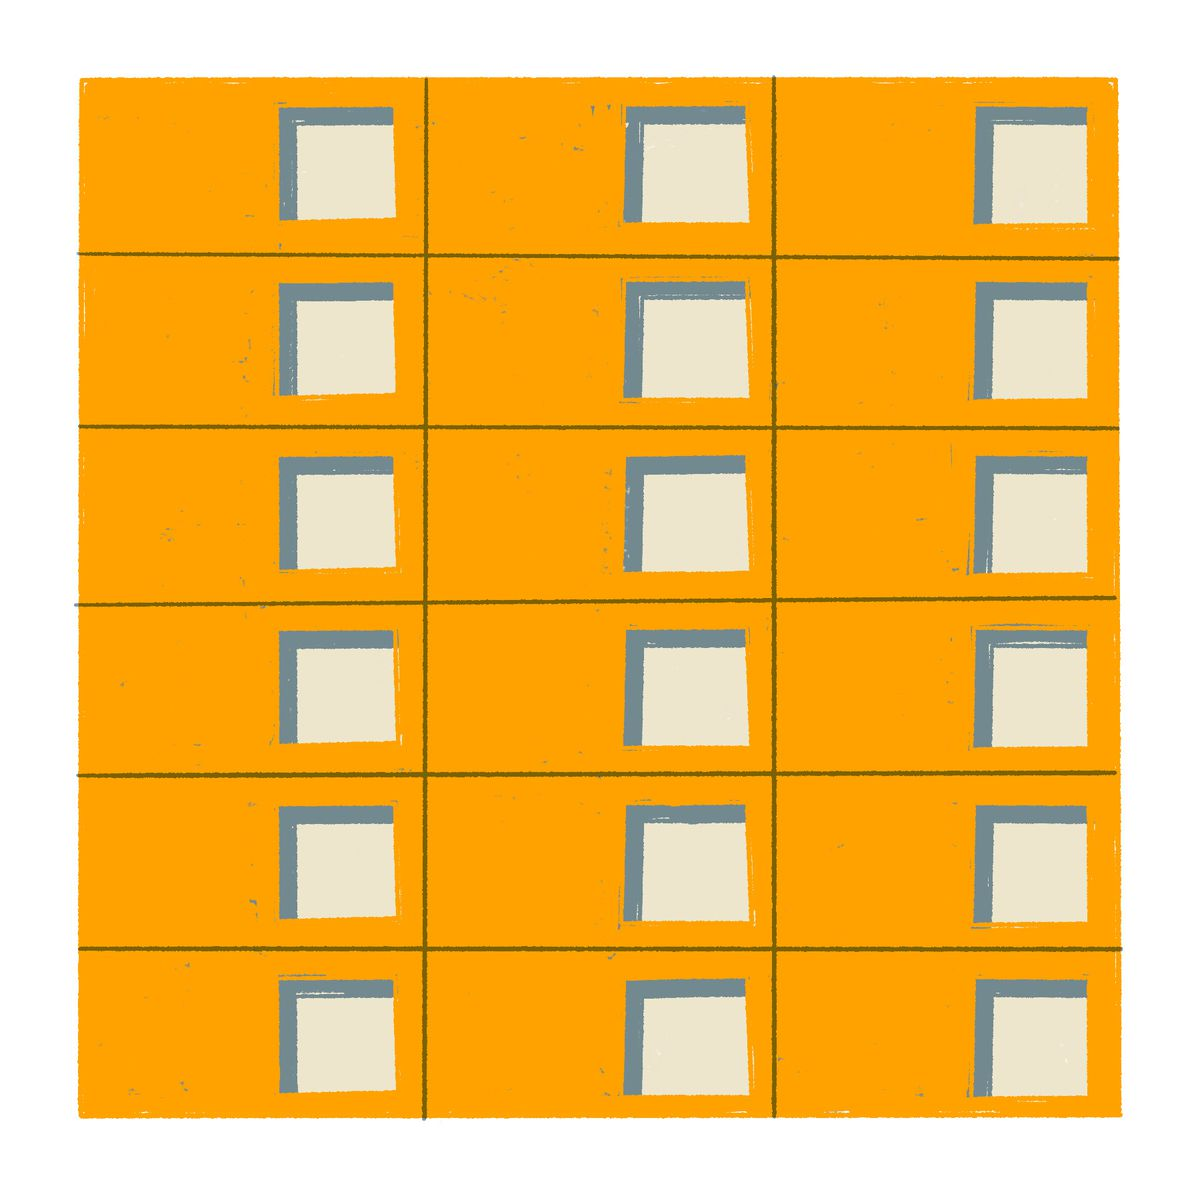 A 6x3 grid of rectangles with a square cutout centered on the right side of each individual rectangle. Illustration.